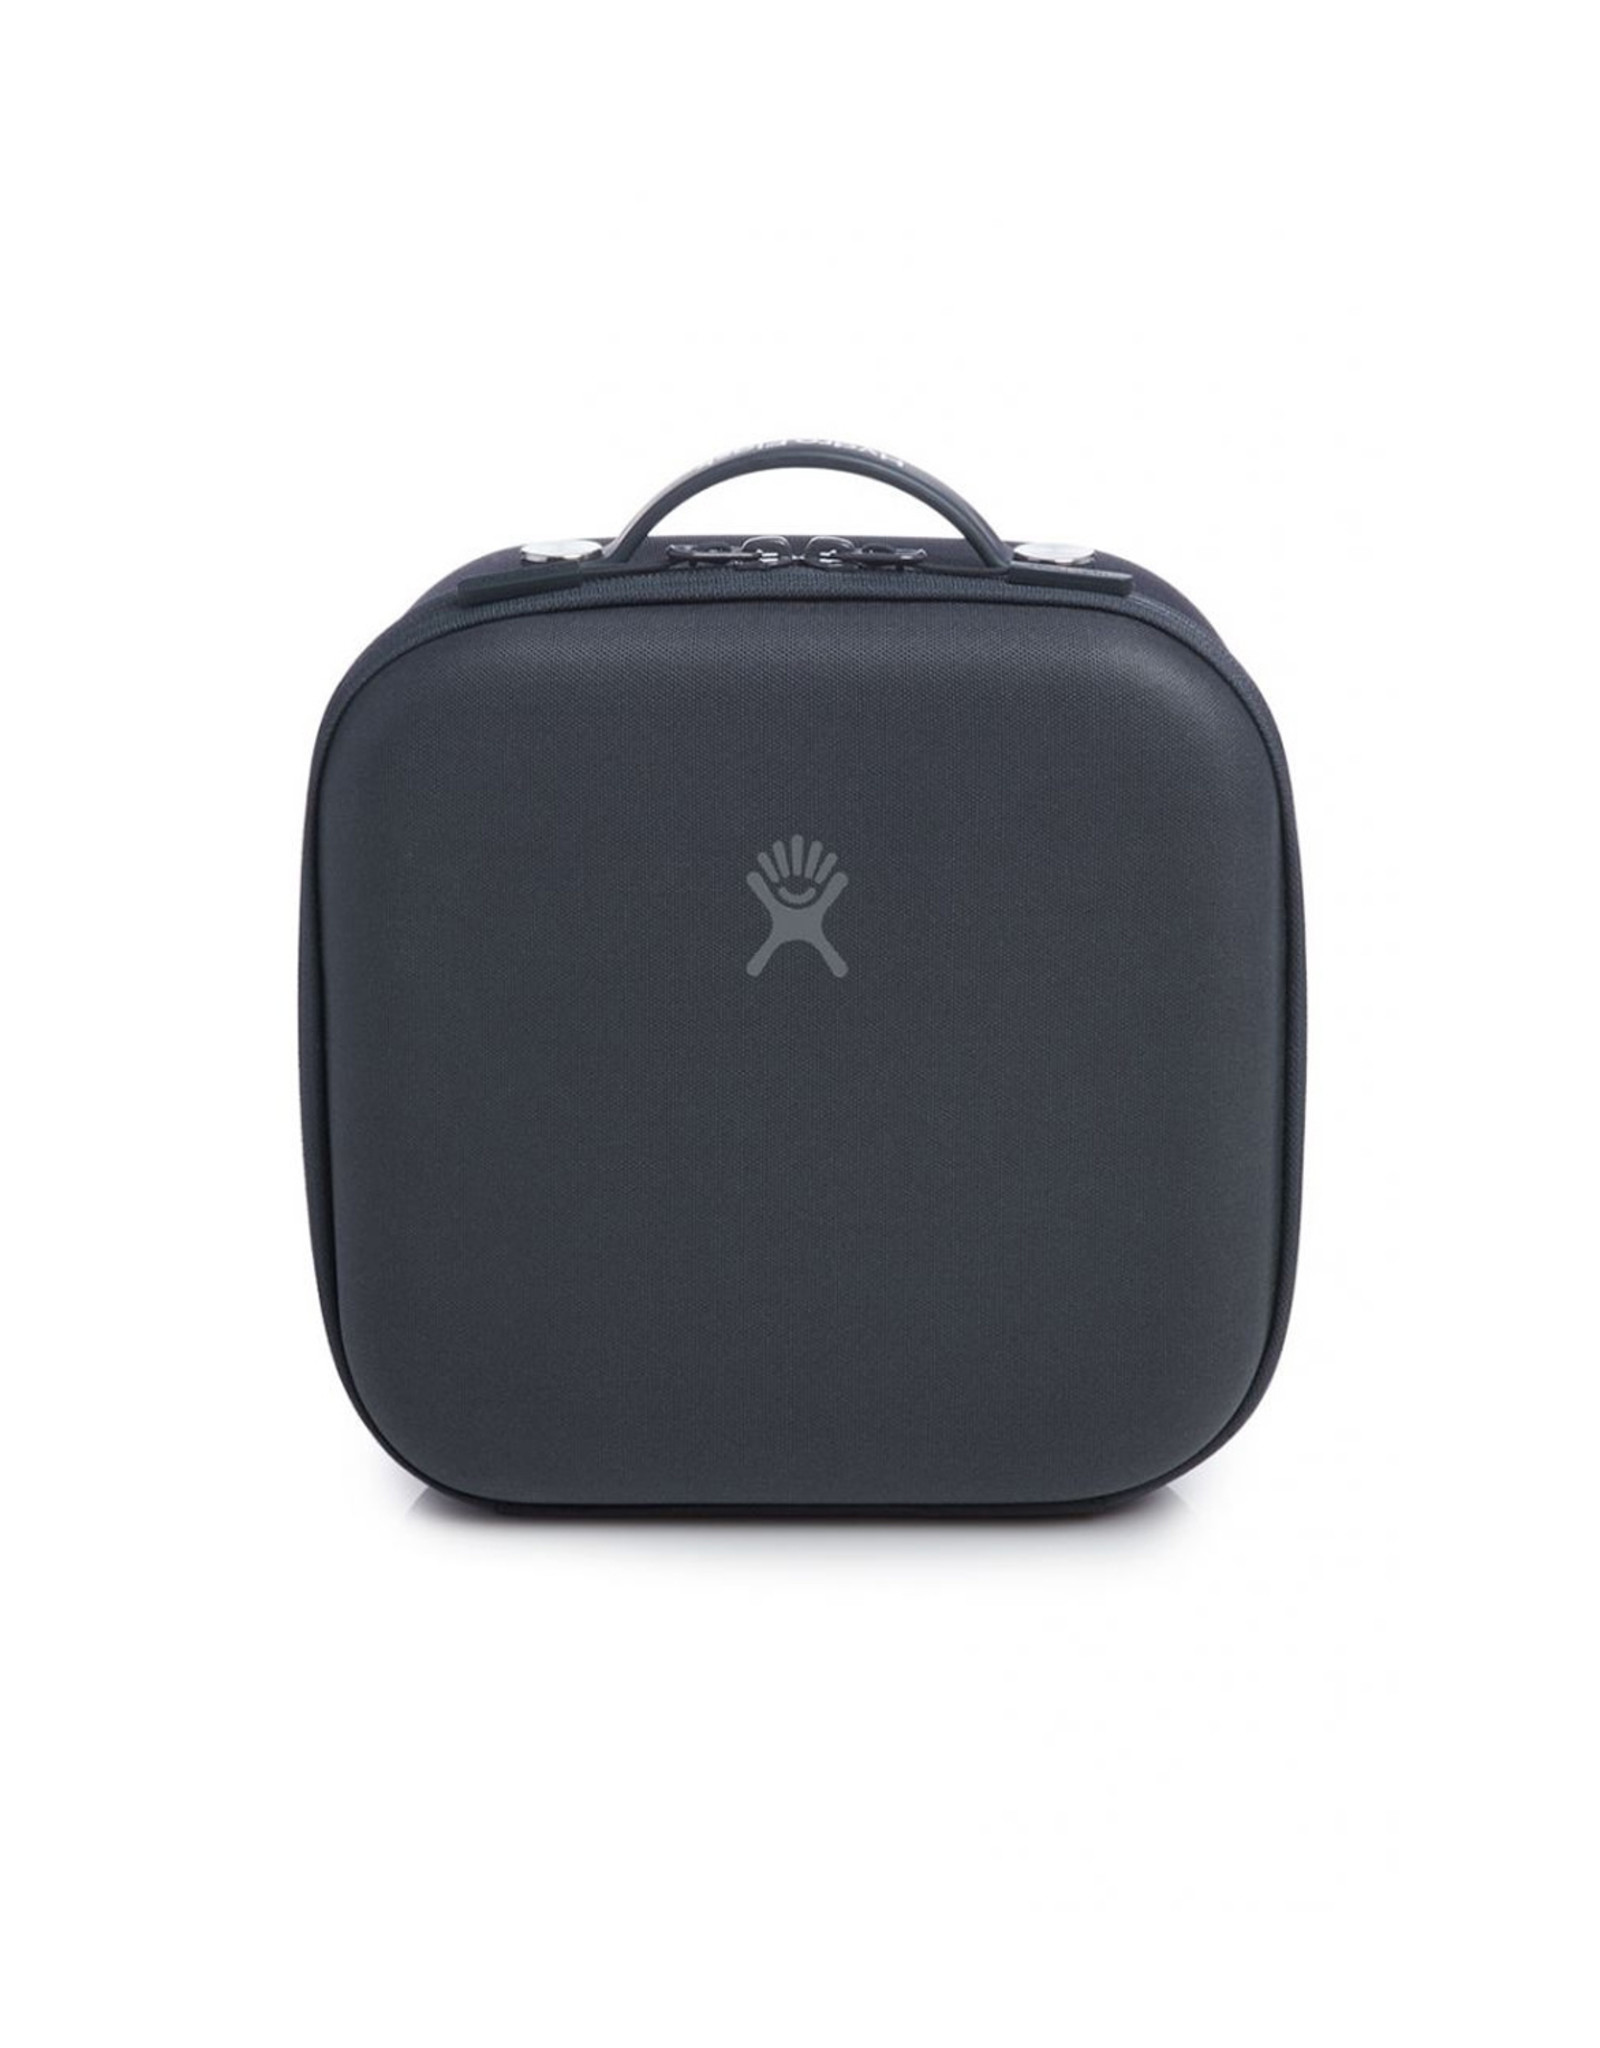 Hydro flask Small Insulated Lunch Box Hydro Flask